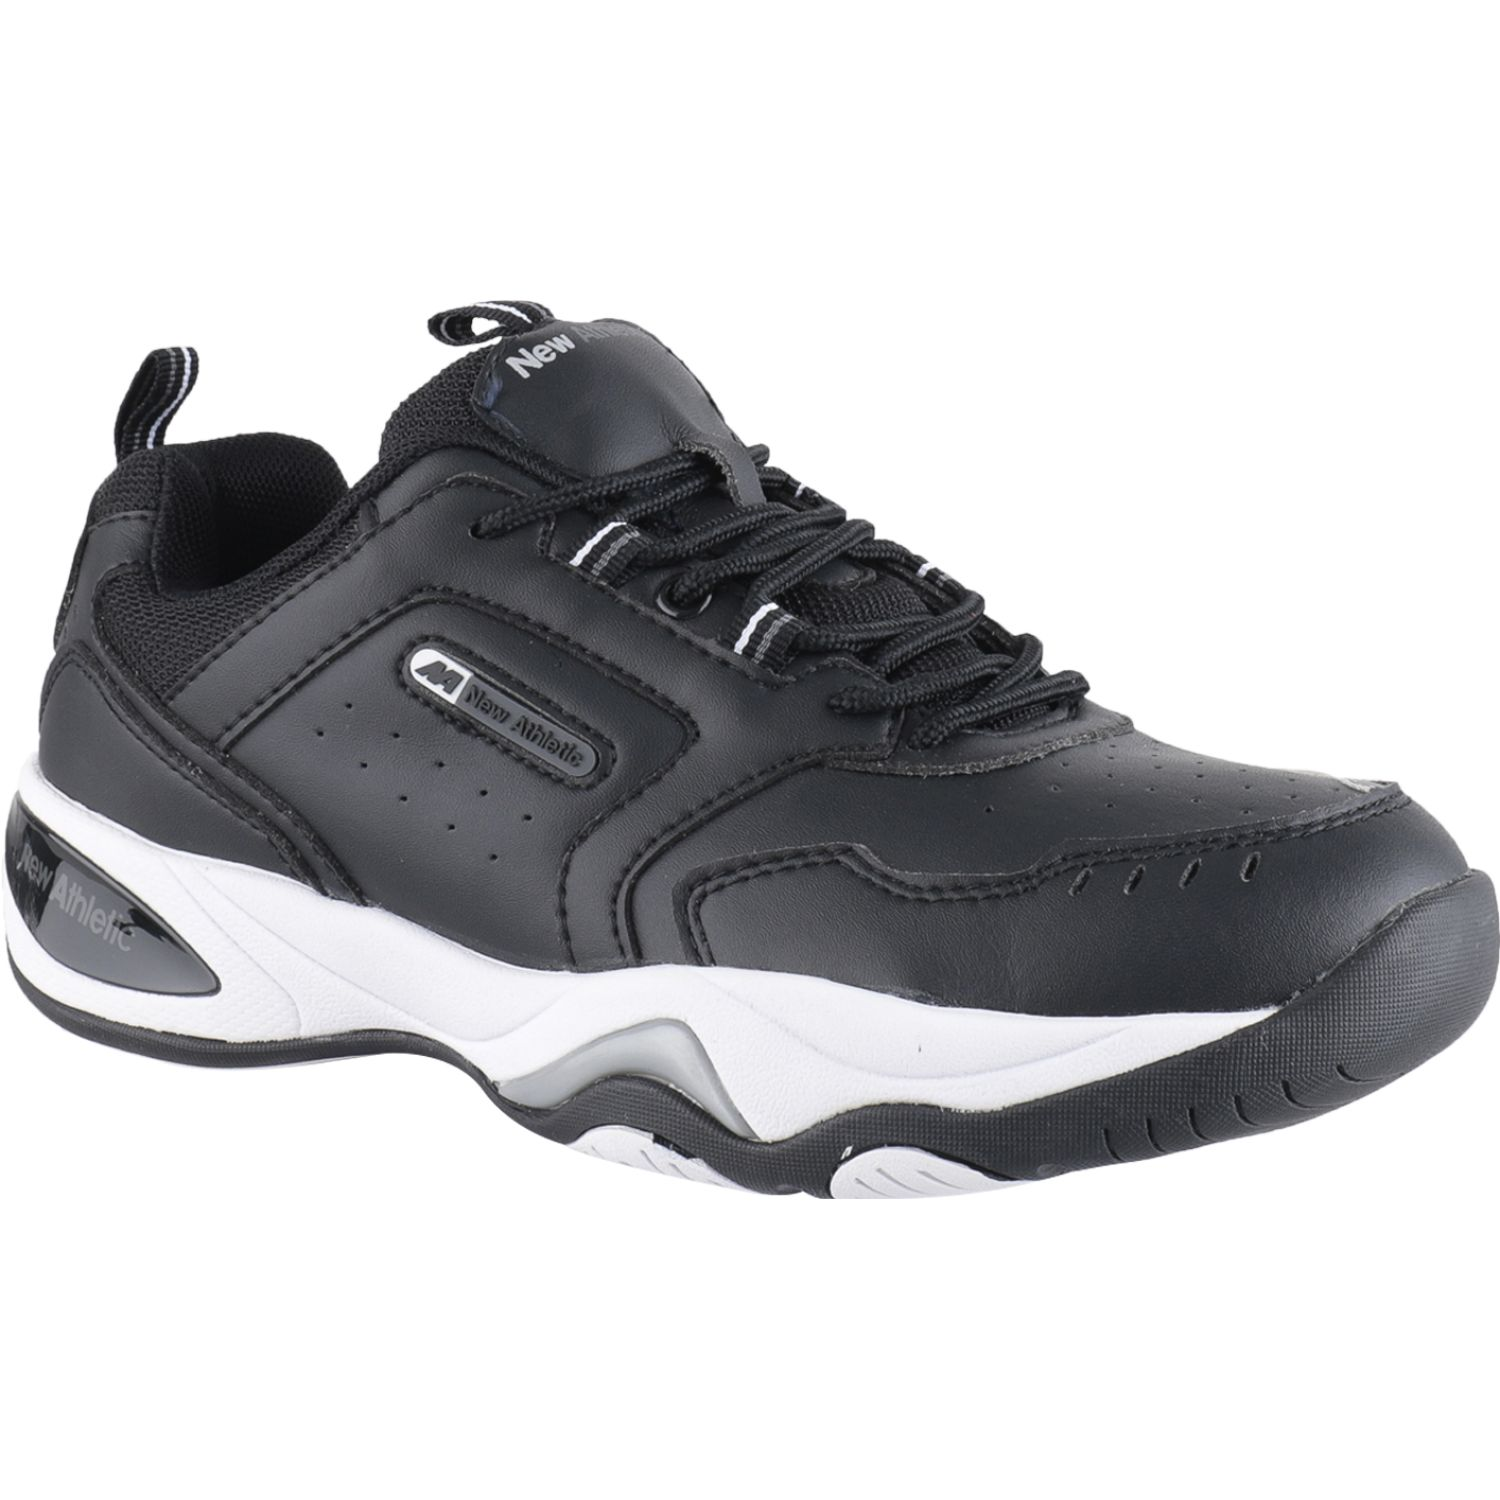 NEW ATHLETIC Row Negro Zapatillas de moda